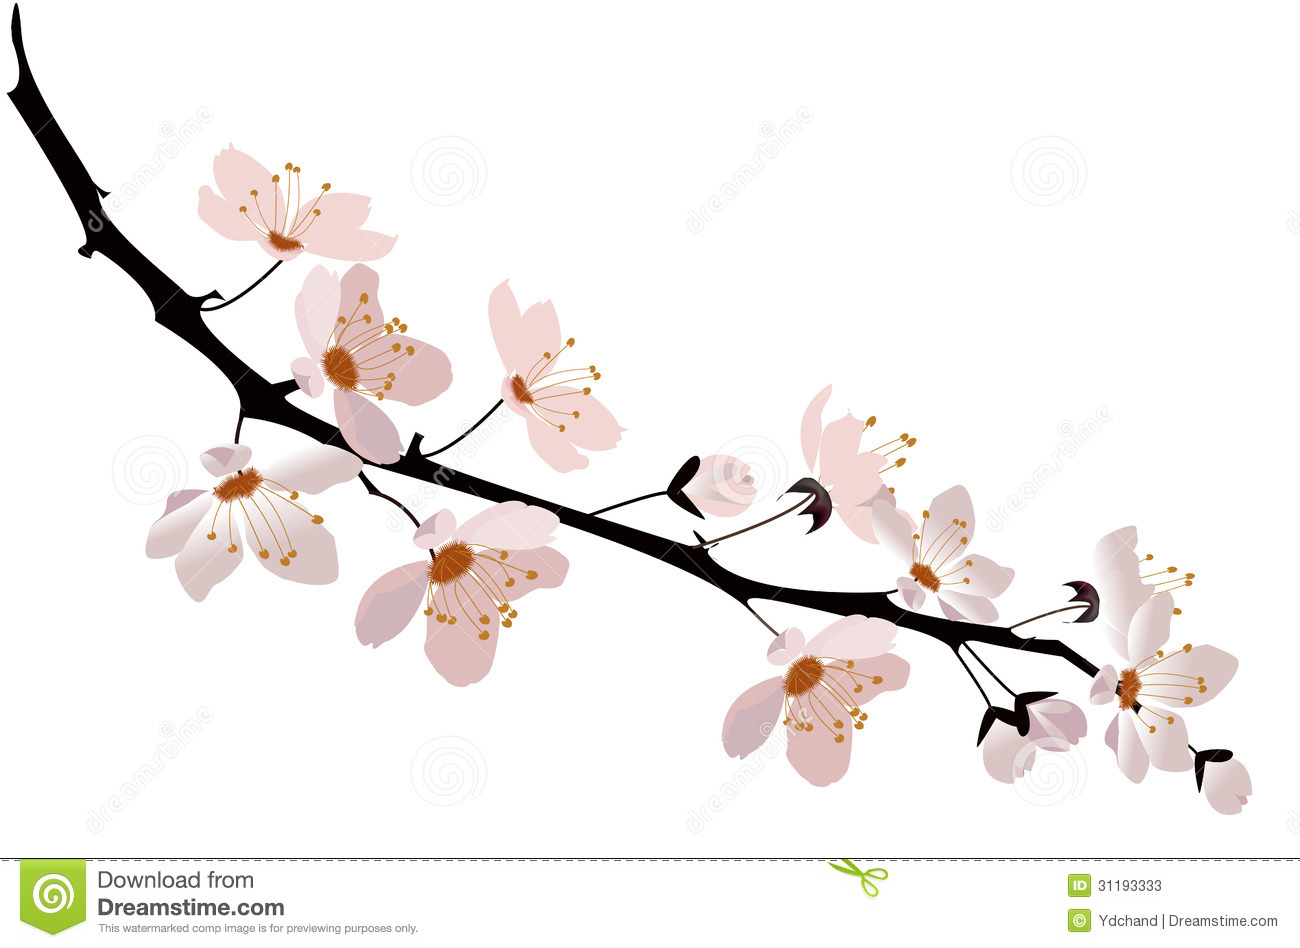 Drawn sakura blossom white background Cherry Drawings and blossom White